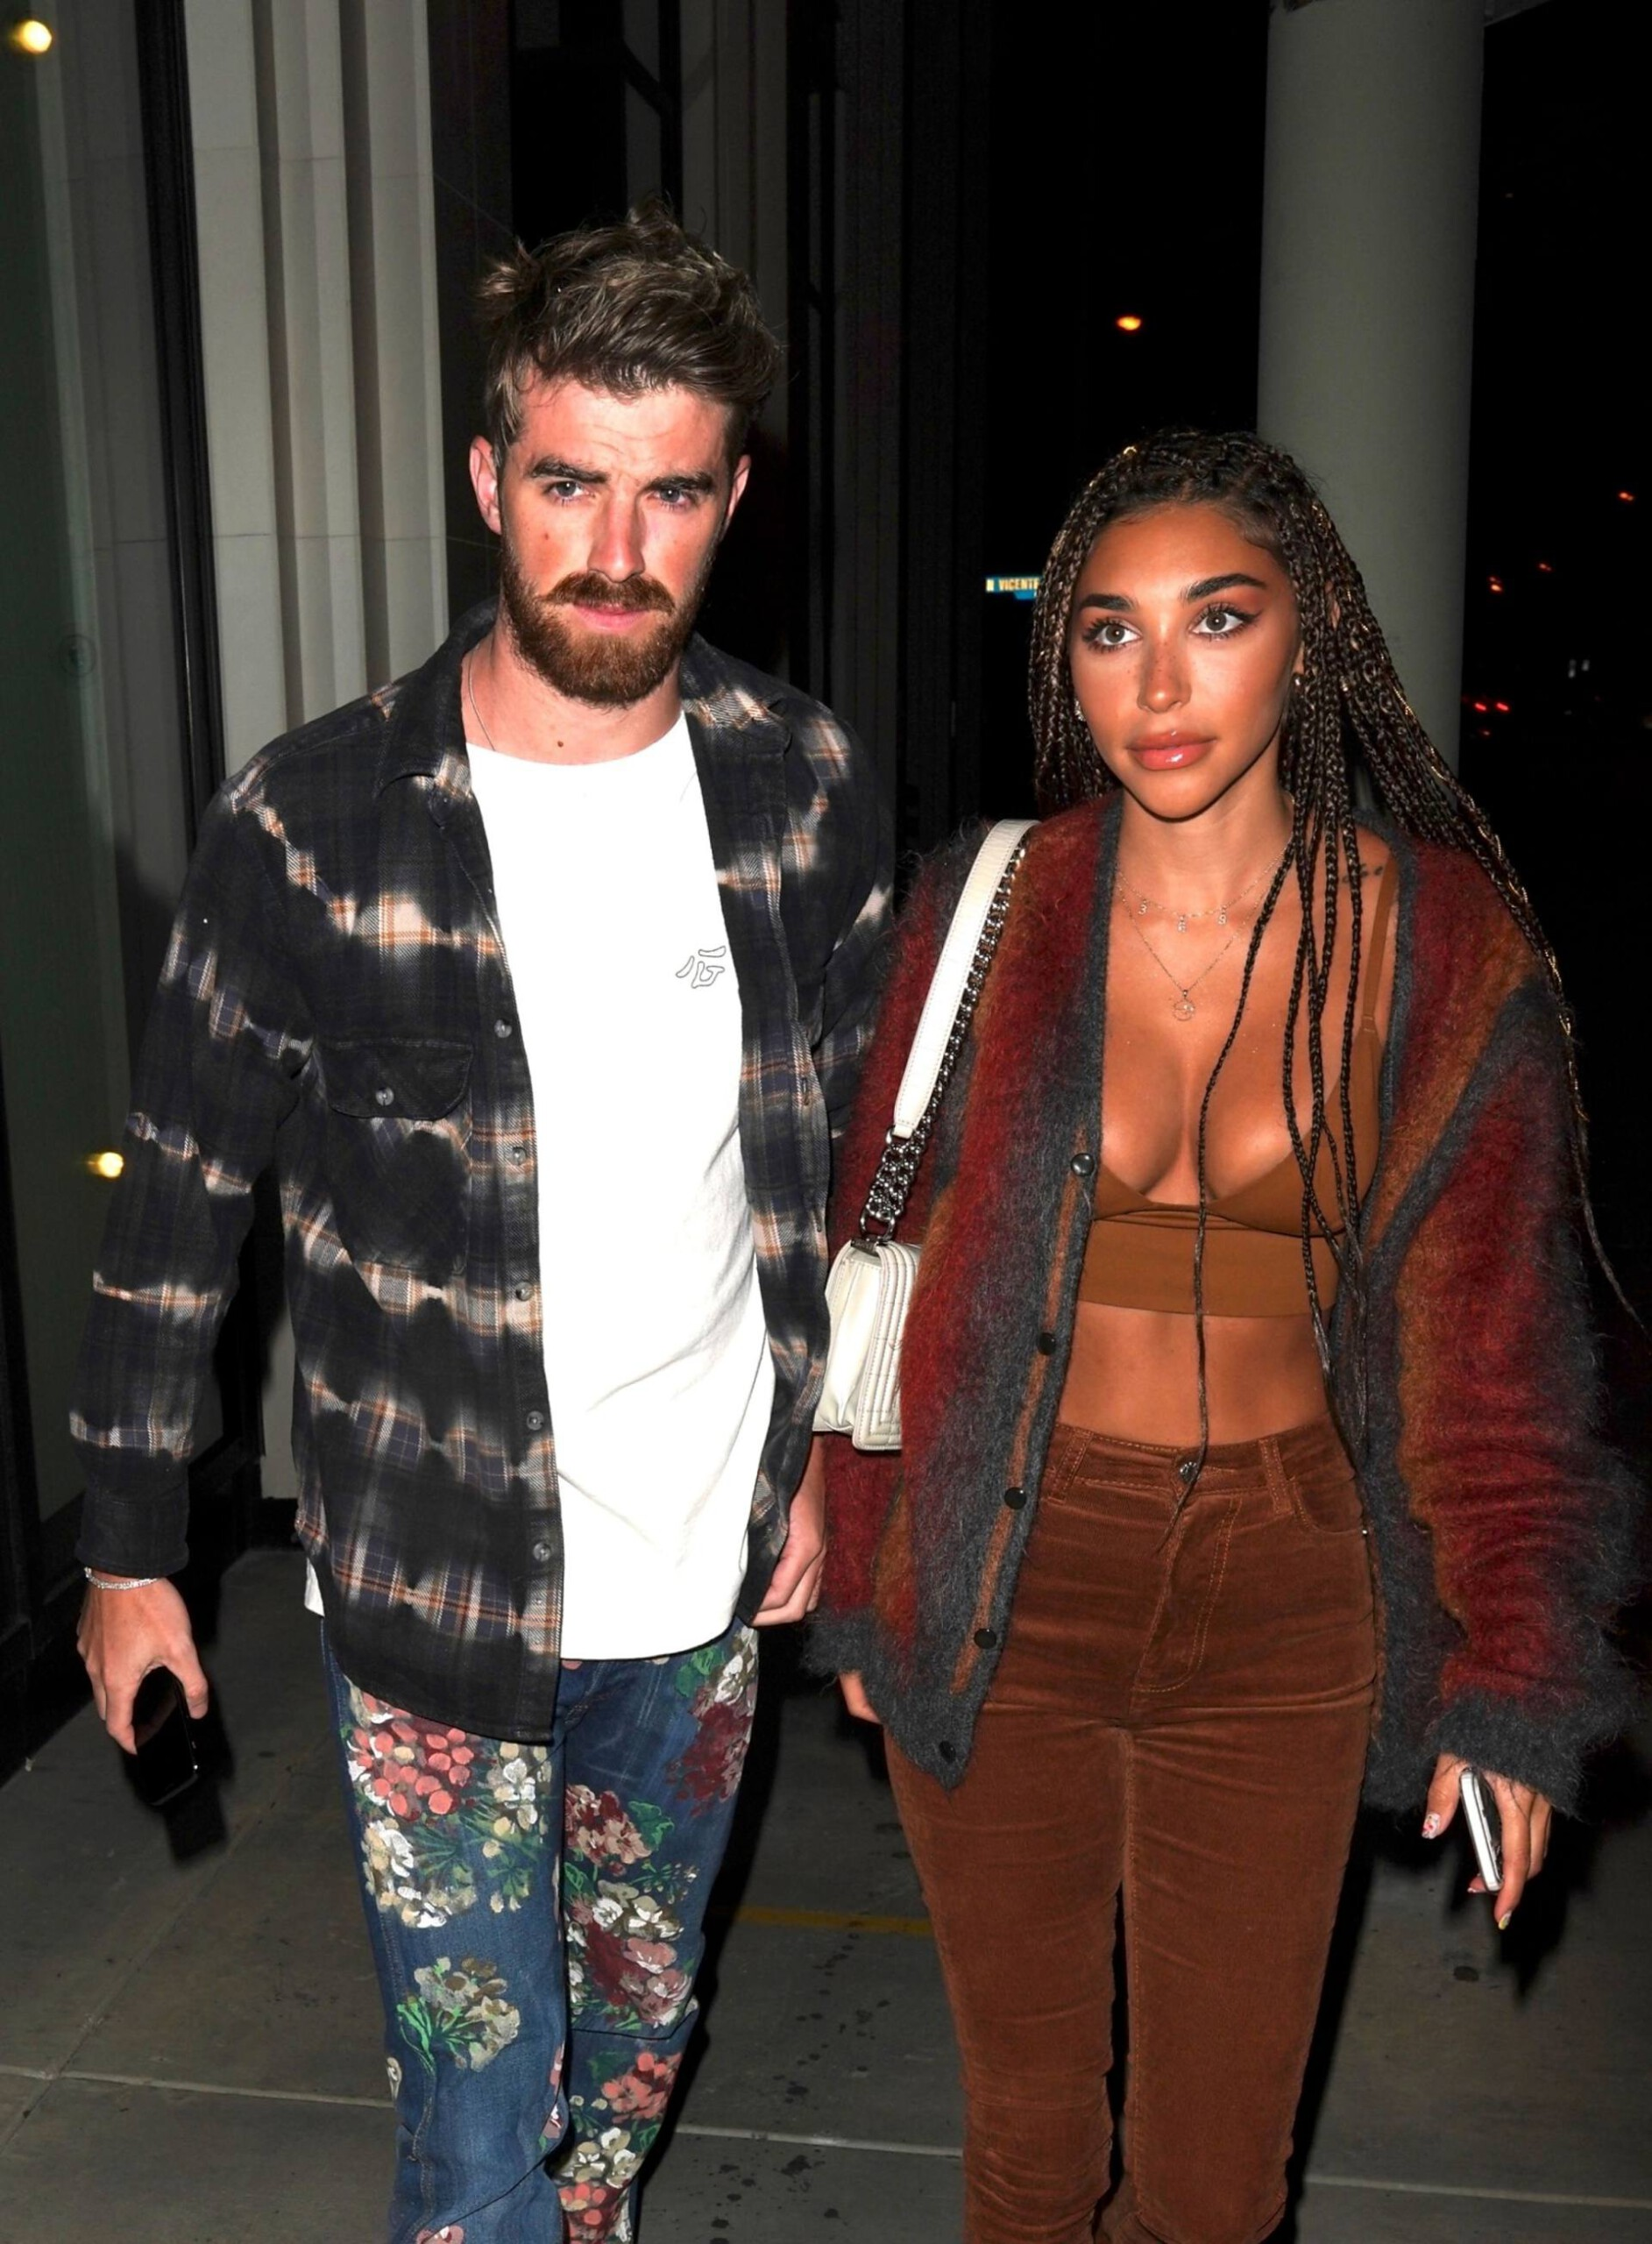 Chantel Jeffries – Sexy Boobs In Big Cleavage At Catch Restaurant In West Hollywood 0001